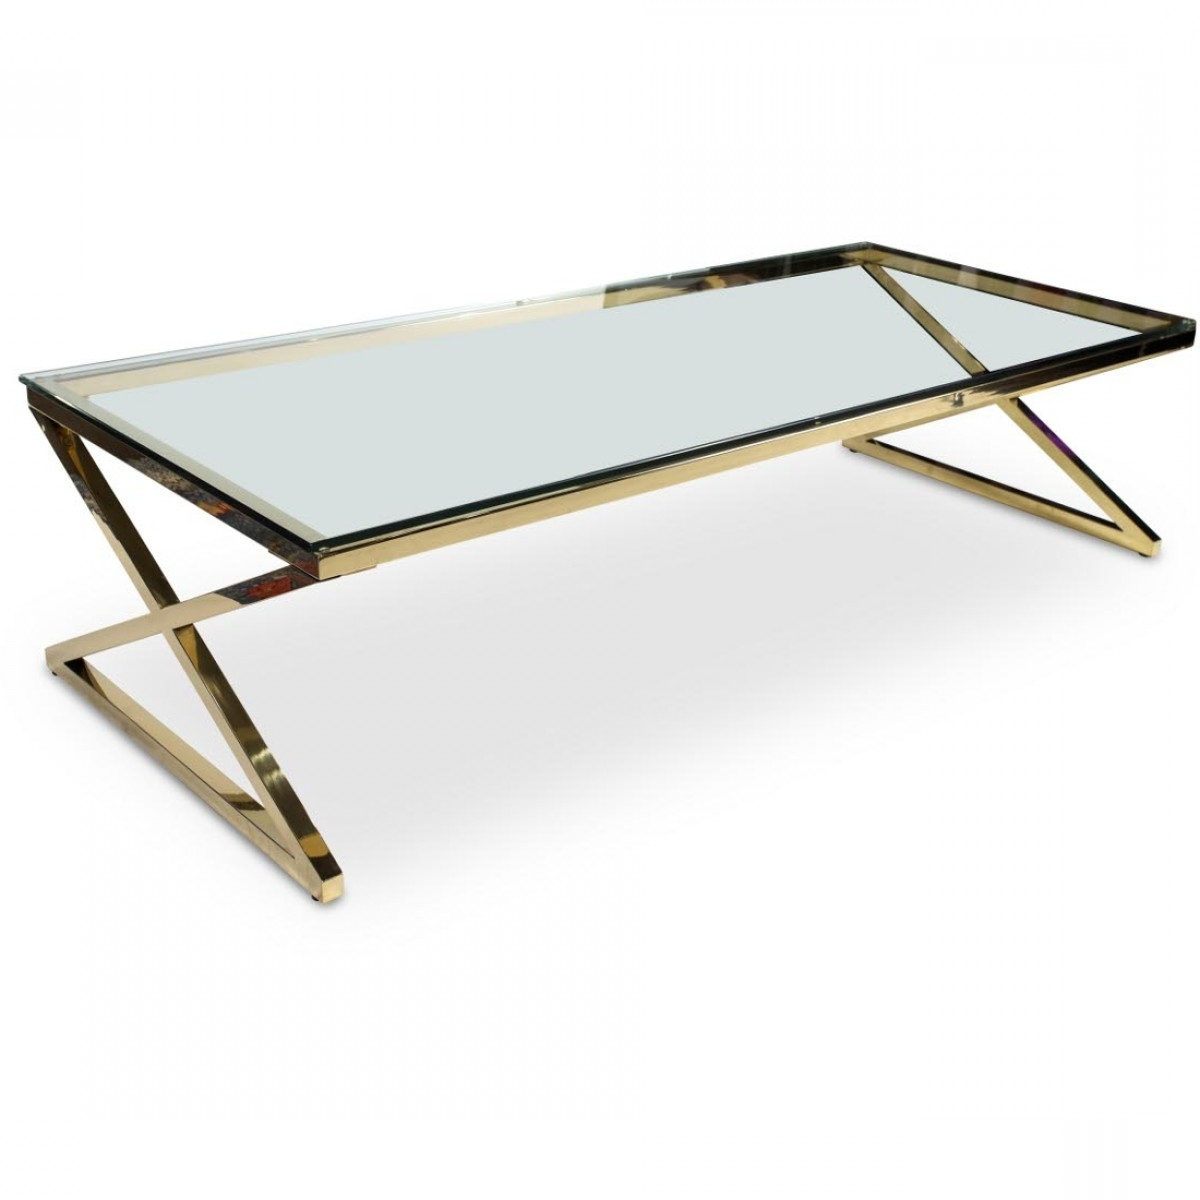 Most Popular Rectangular Coffee Tables With Brass Legs Intended For Aico Michael Amini Trance Stacy Rectangular Cocktail Table With (View 14 of 20)